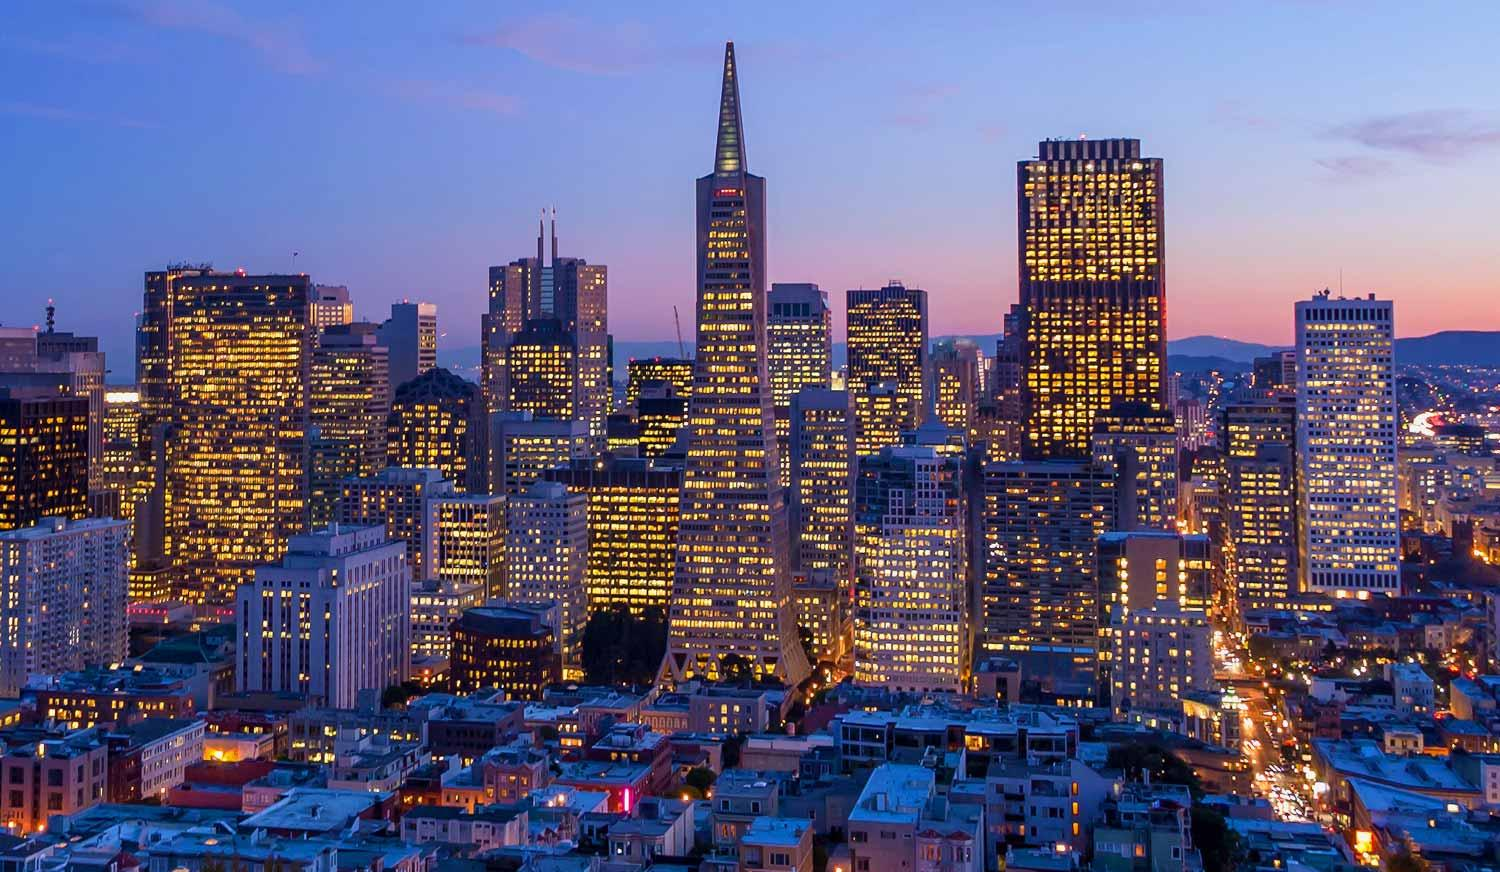 San Francisco: 10 Best Hotels That Are FREE With Points